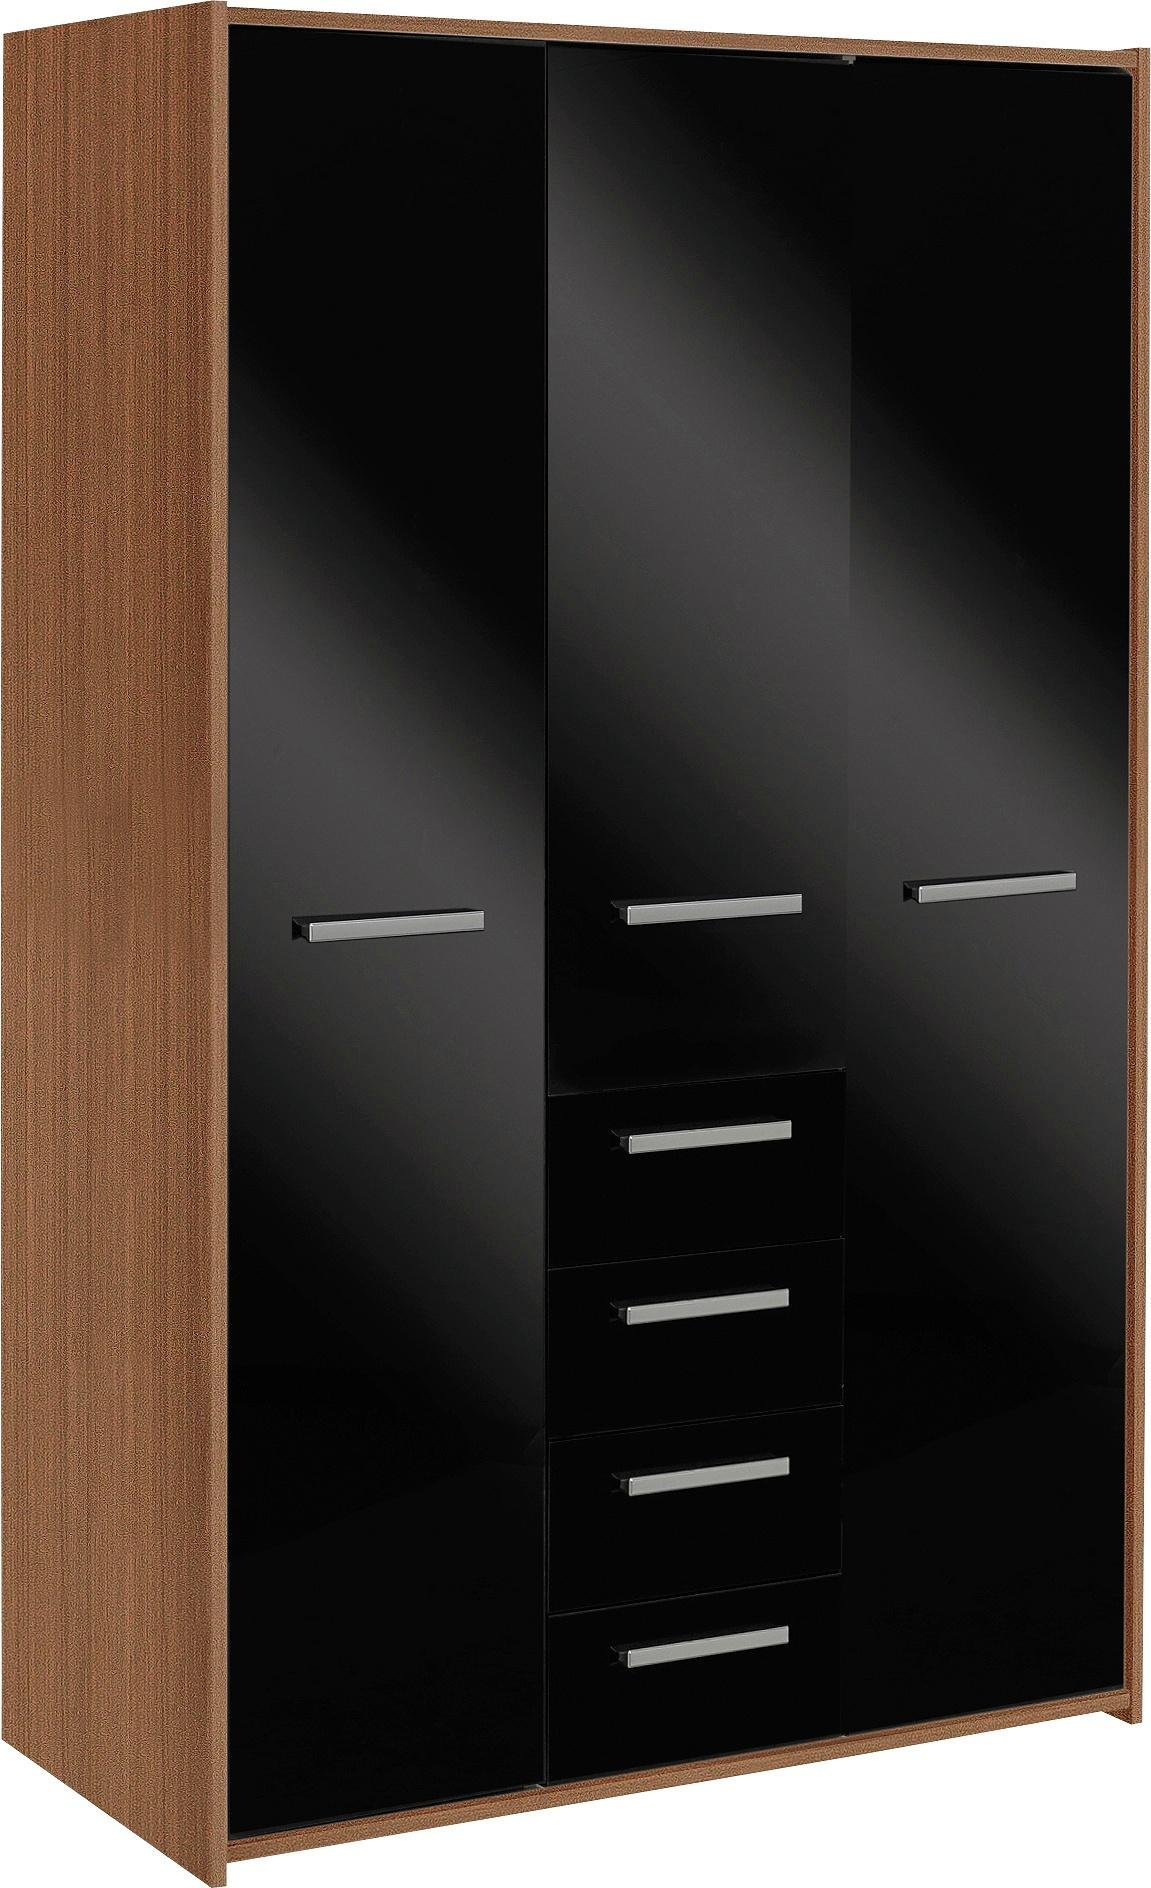 New Sywell 3 Door 4 Drawer Wardrobe (Walnut Effect & Black)